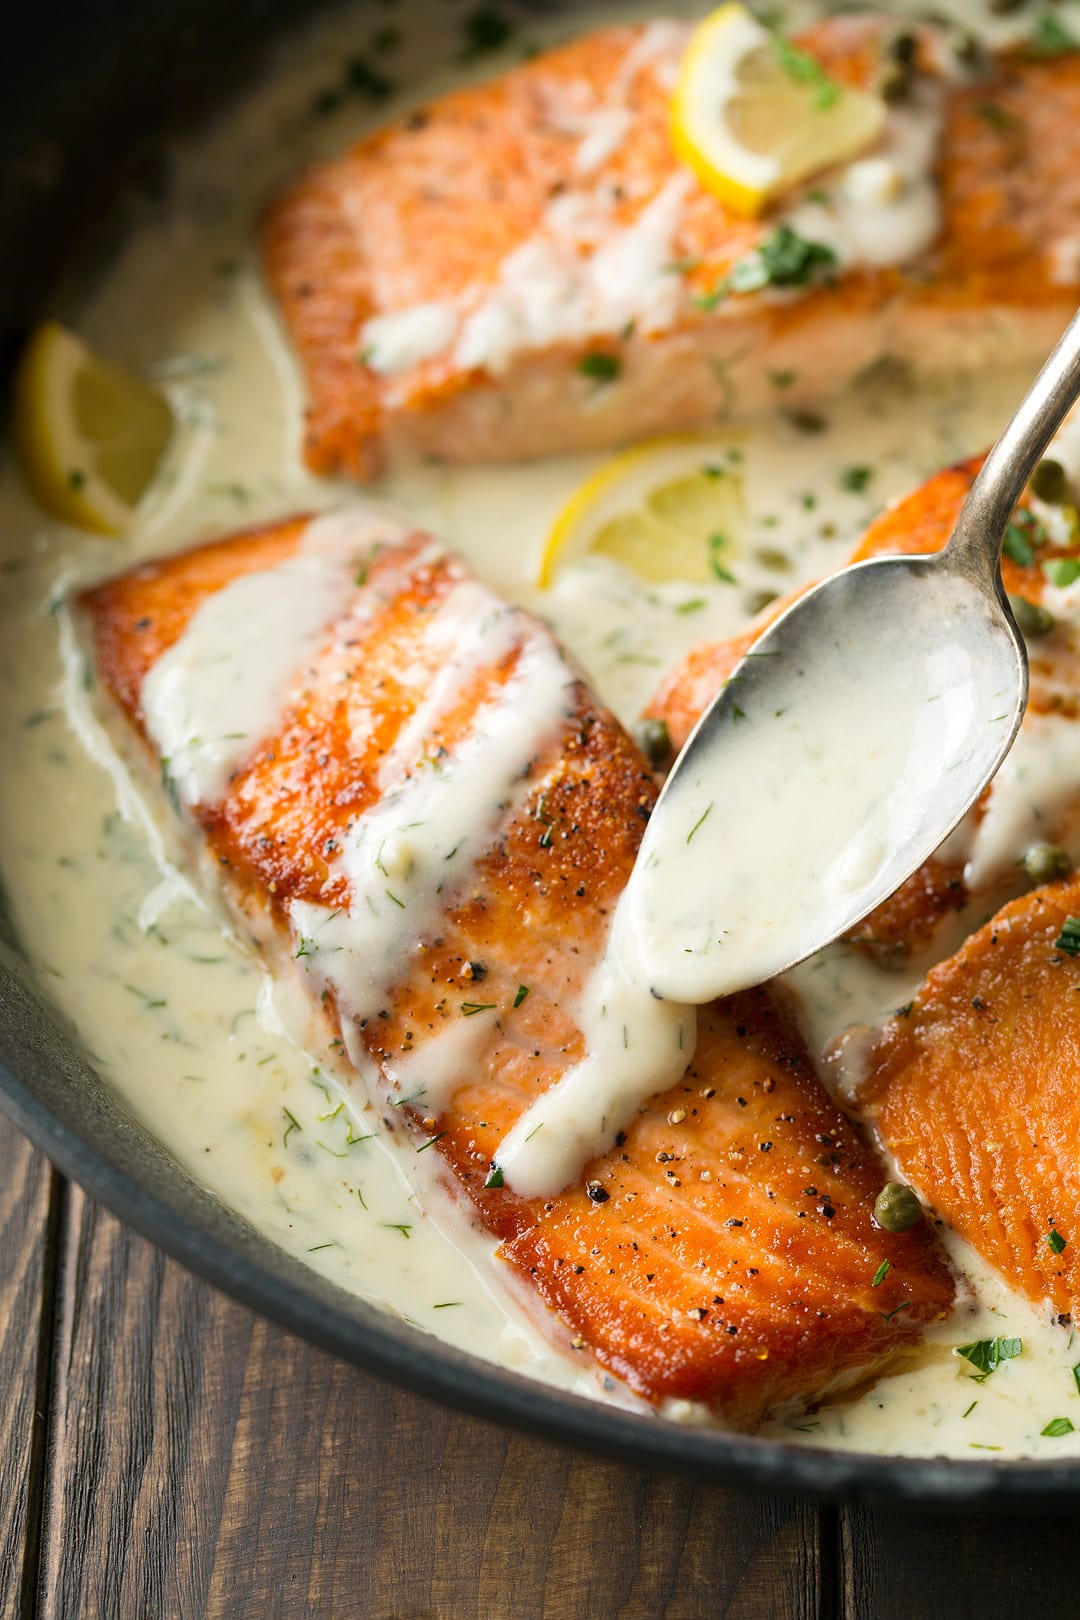 Salmon recipe cooked in a skillet with creamy lemon dill sauce over the top.